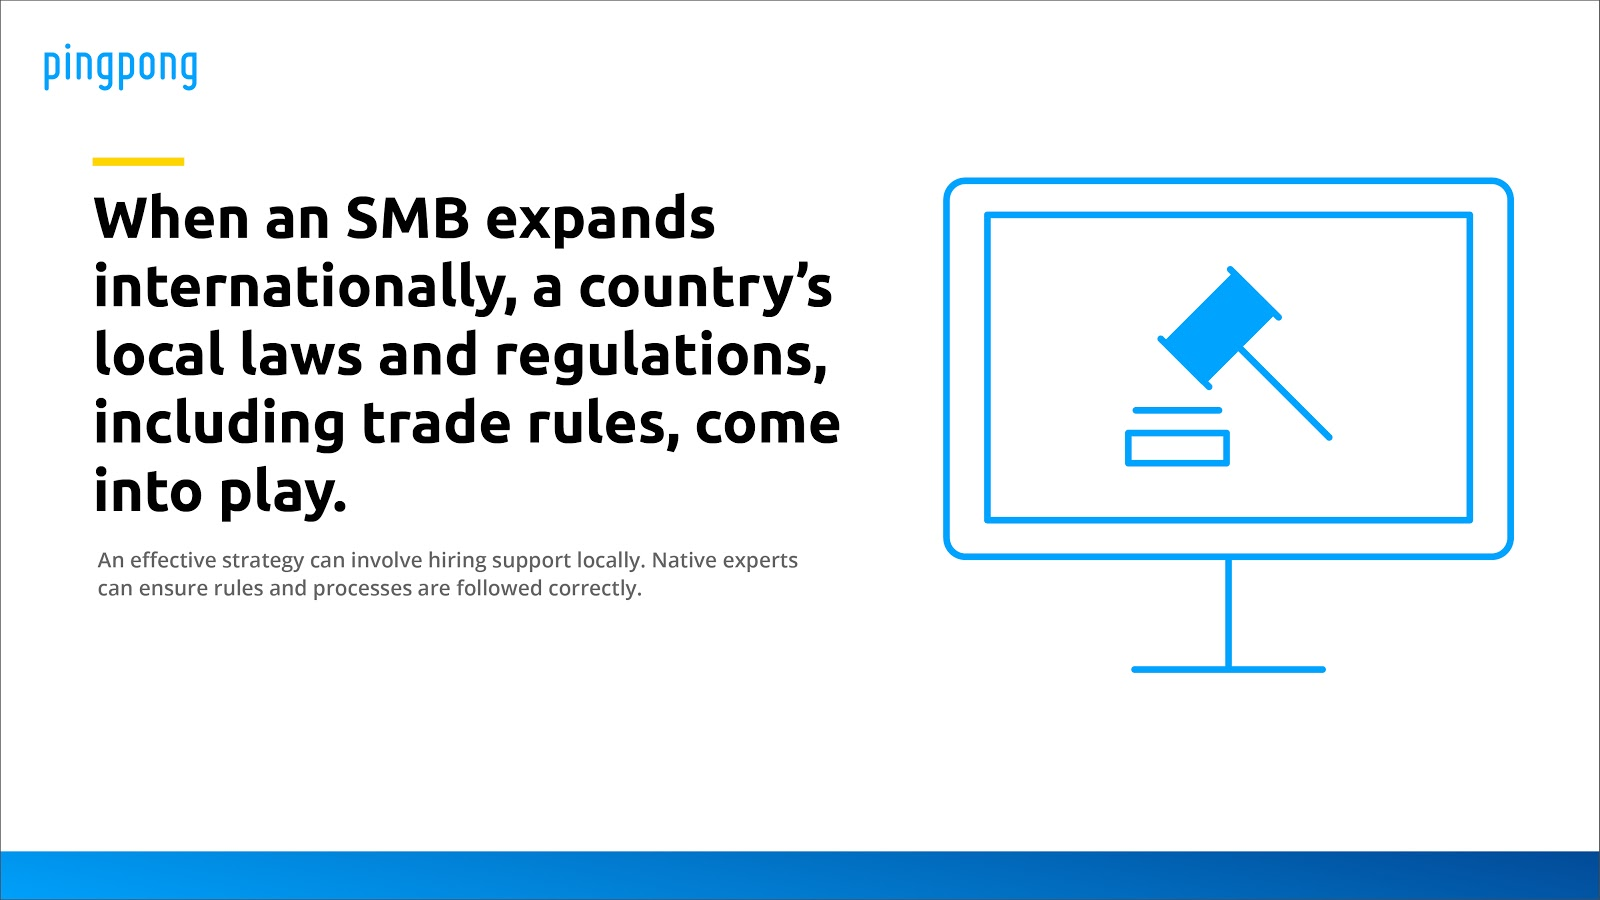 When an SMB expands internationally, a country's local laws and regulations, including trade rules, come into play.